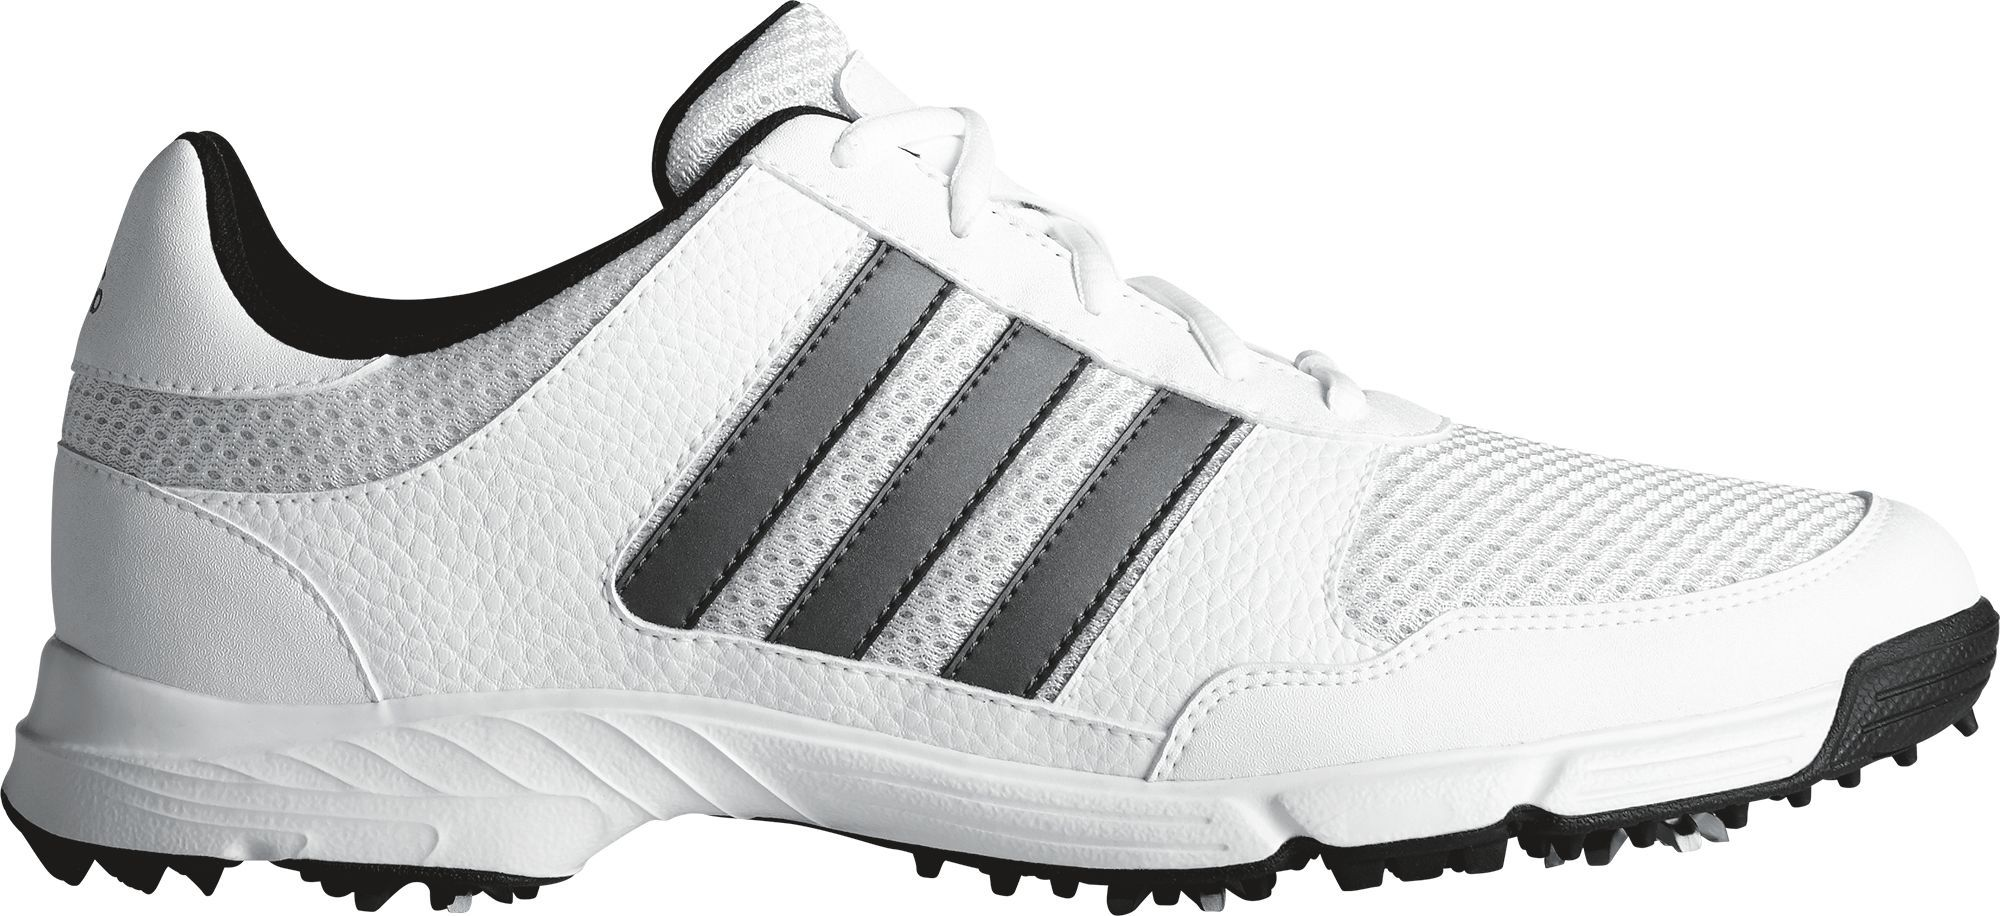 35++ Adidas tech feather golf shoes ideas in 2021